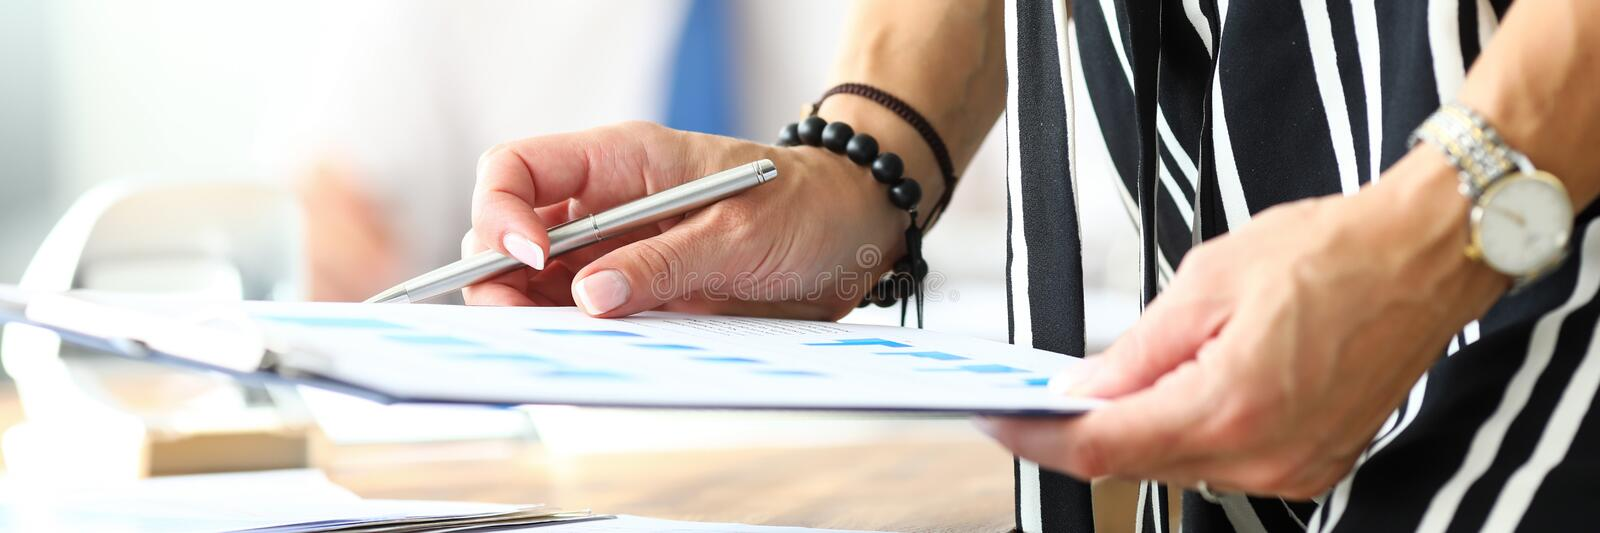 Hands of businesswoman working with financial documents. Letterbox view of hands of businesswoman working with financial documents close-up. Bookkeeping royalty free stock images